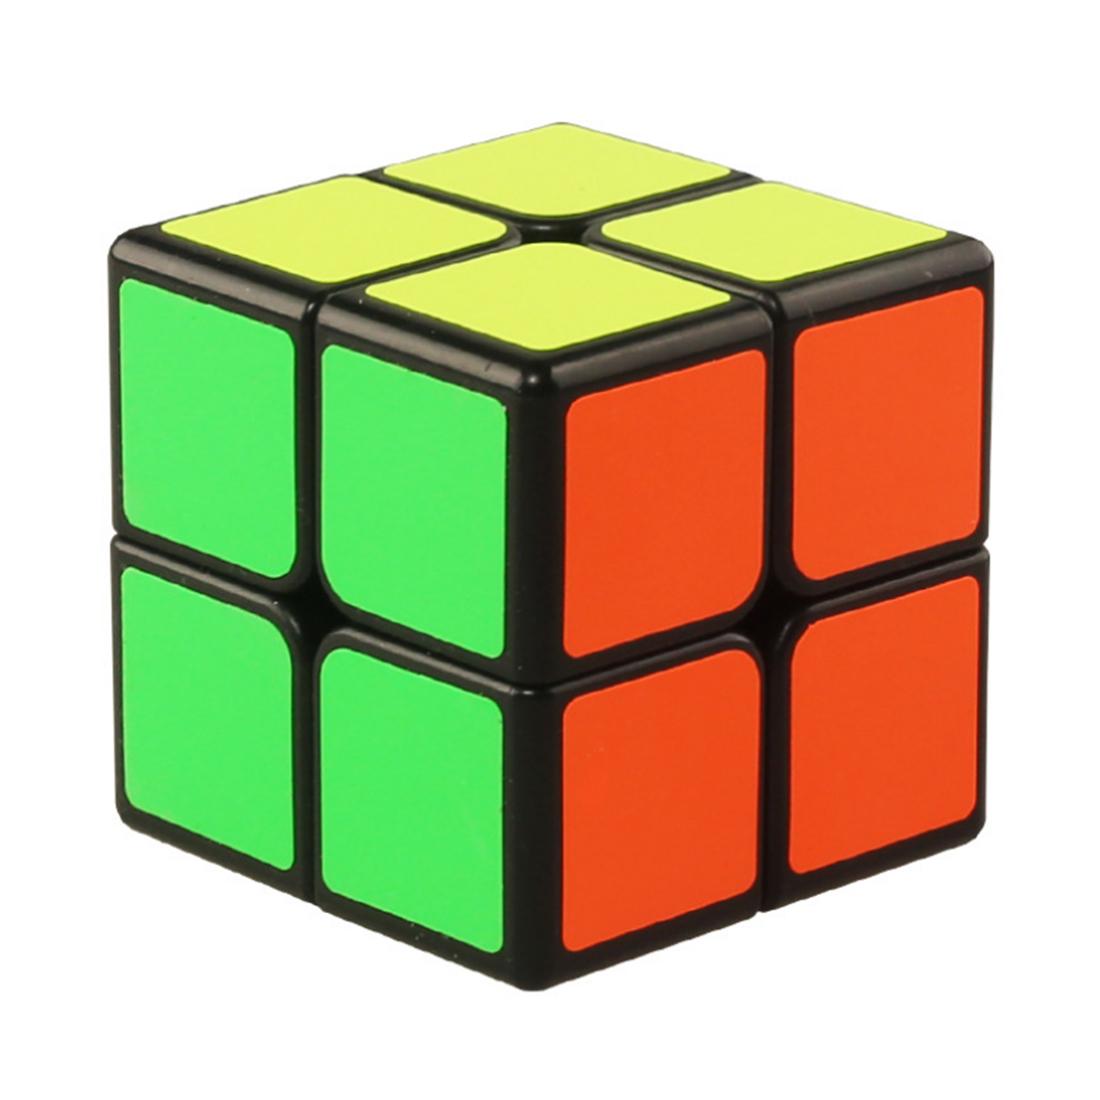 Shengshou Legend 2x2 Magic Cube Puzzle Toy For Competition Challenge